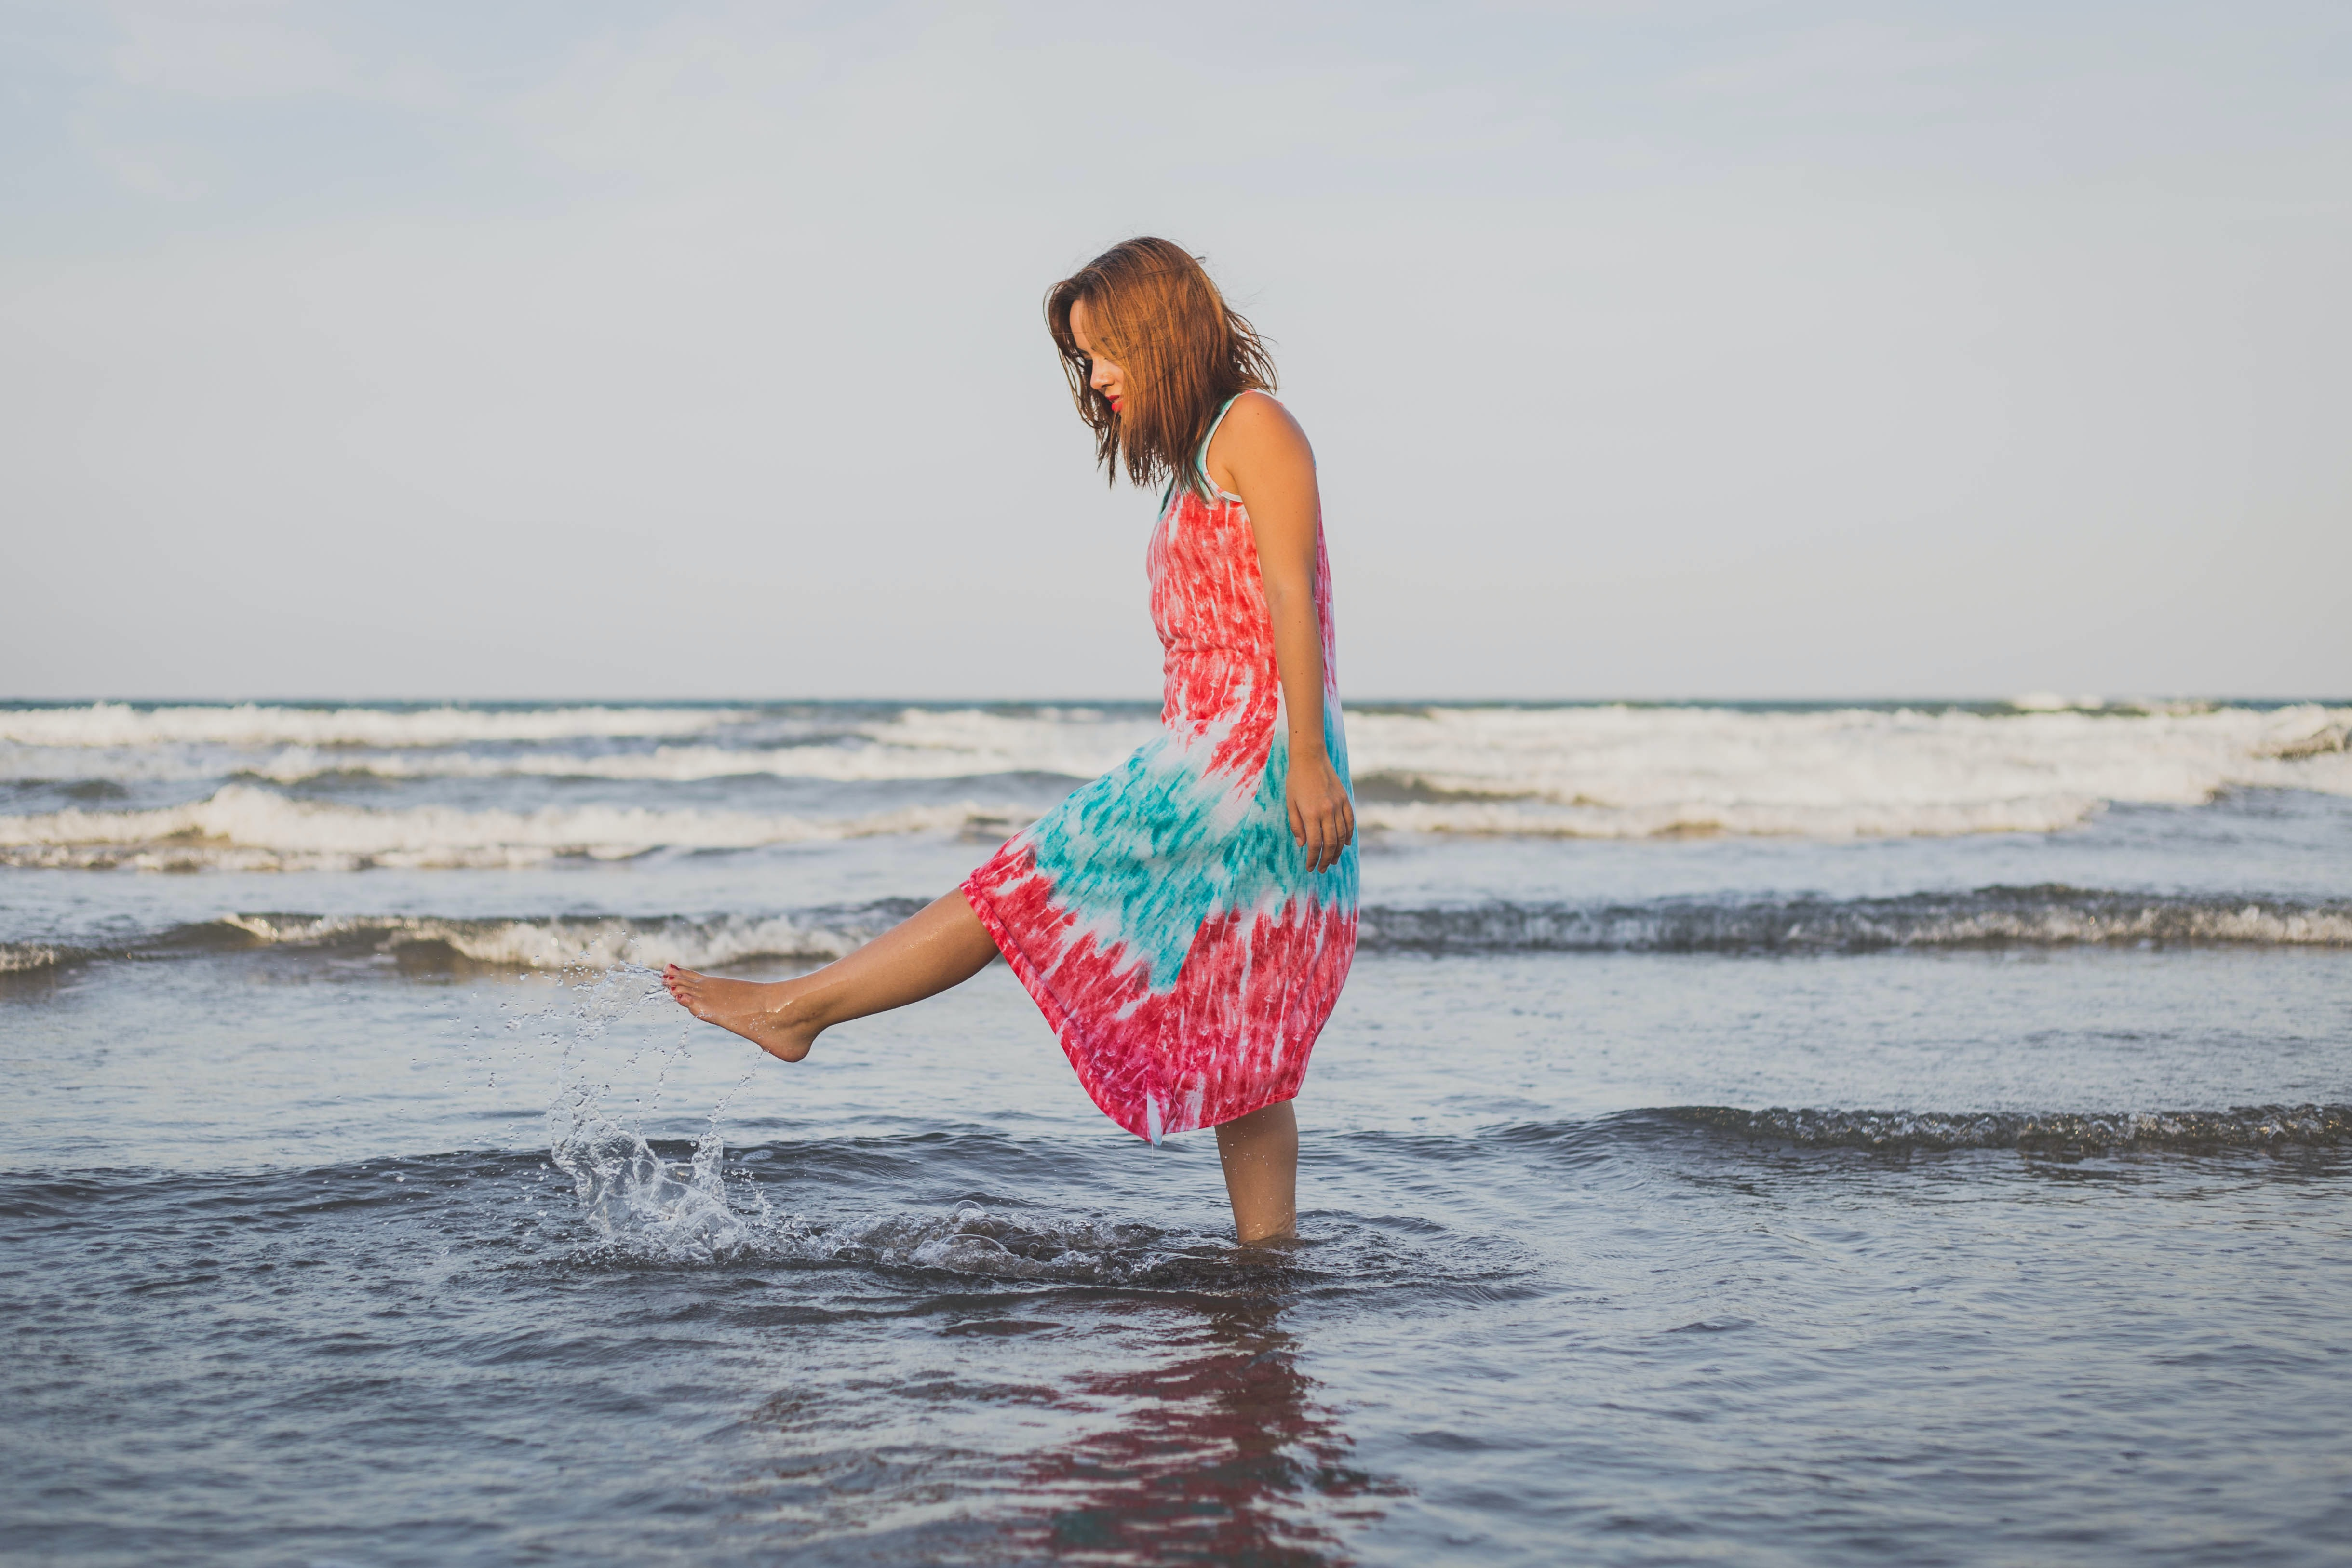 Woman in a colorful dress kicks water and plays in ocean waves